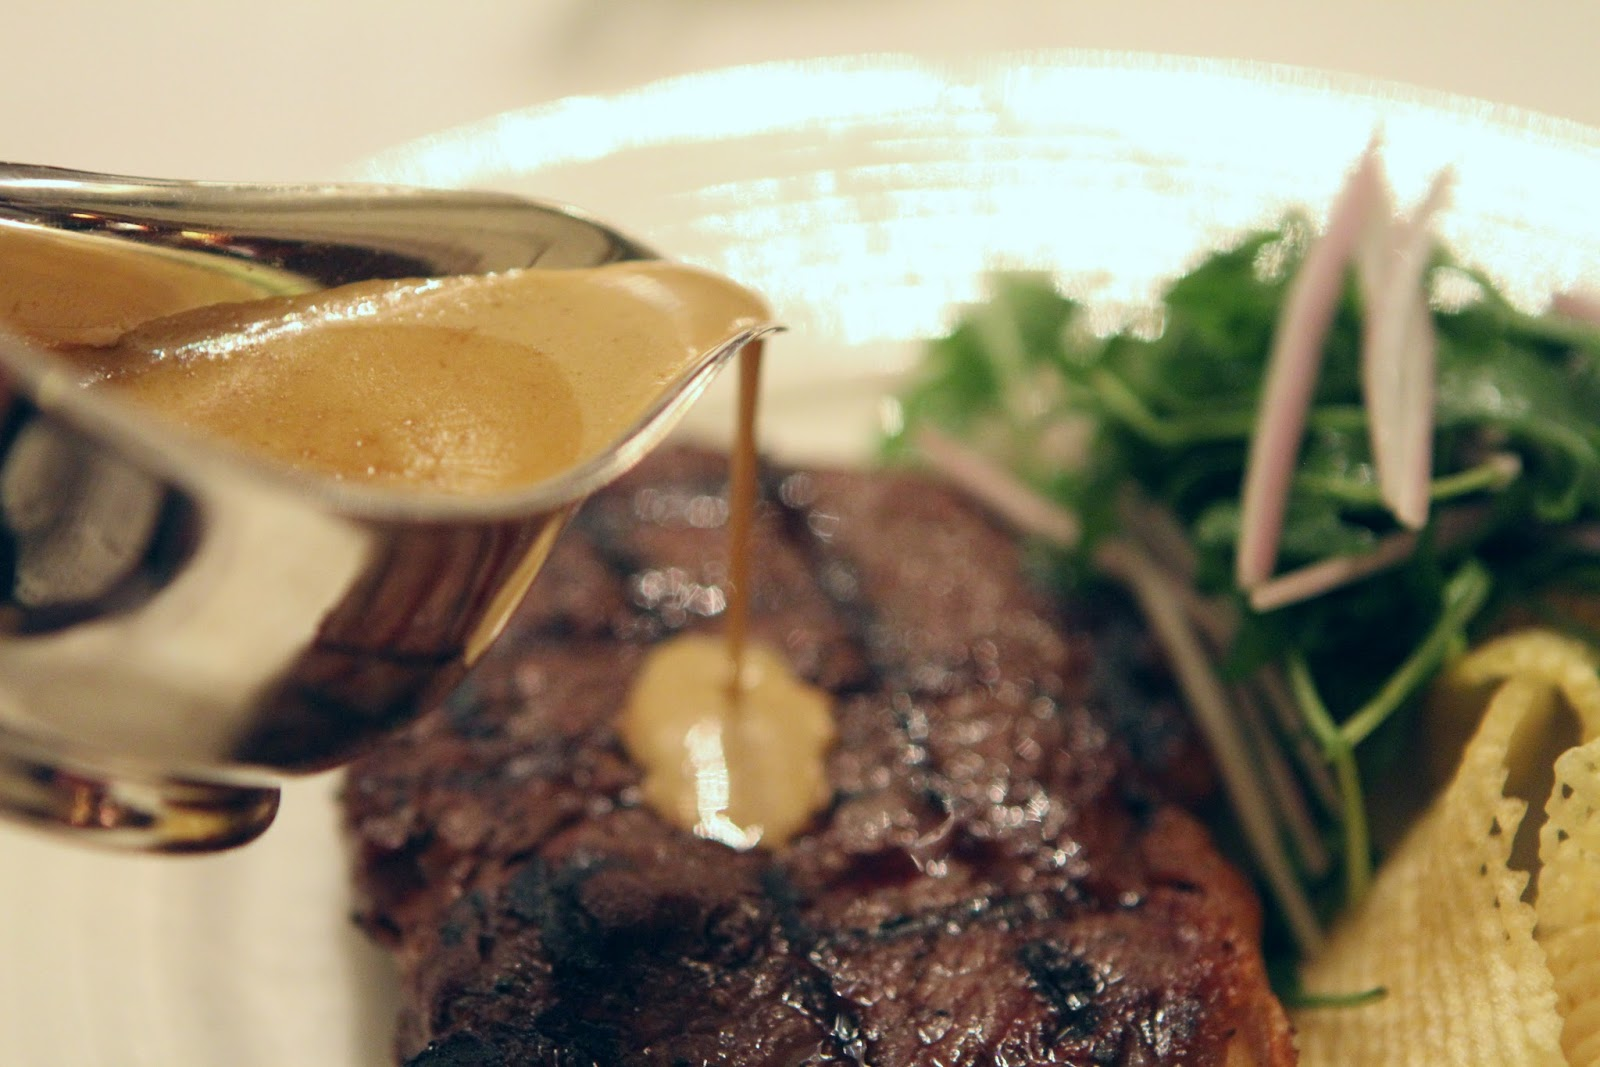 The Savoy grill steak and chips